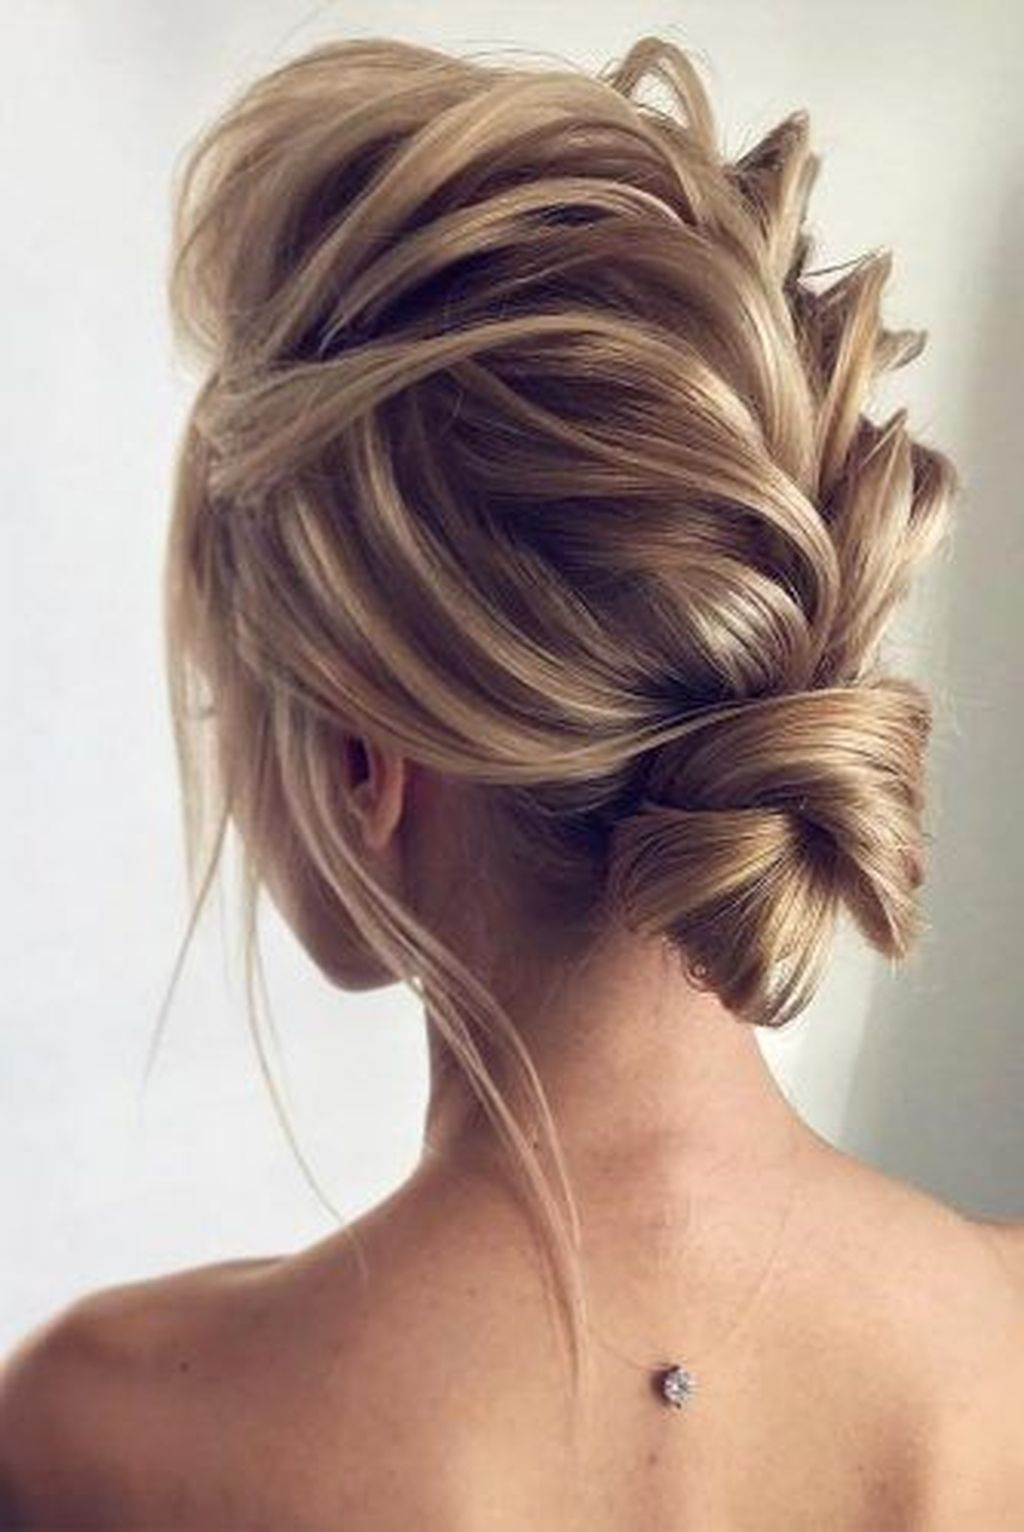 Hairstyle Ideas For Perfect Look On Winter Holidays